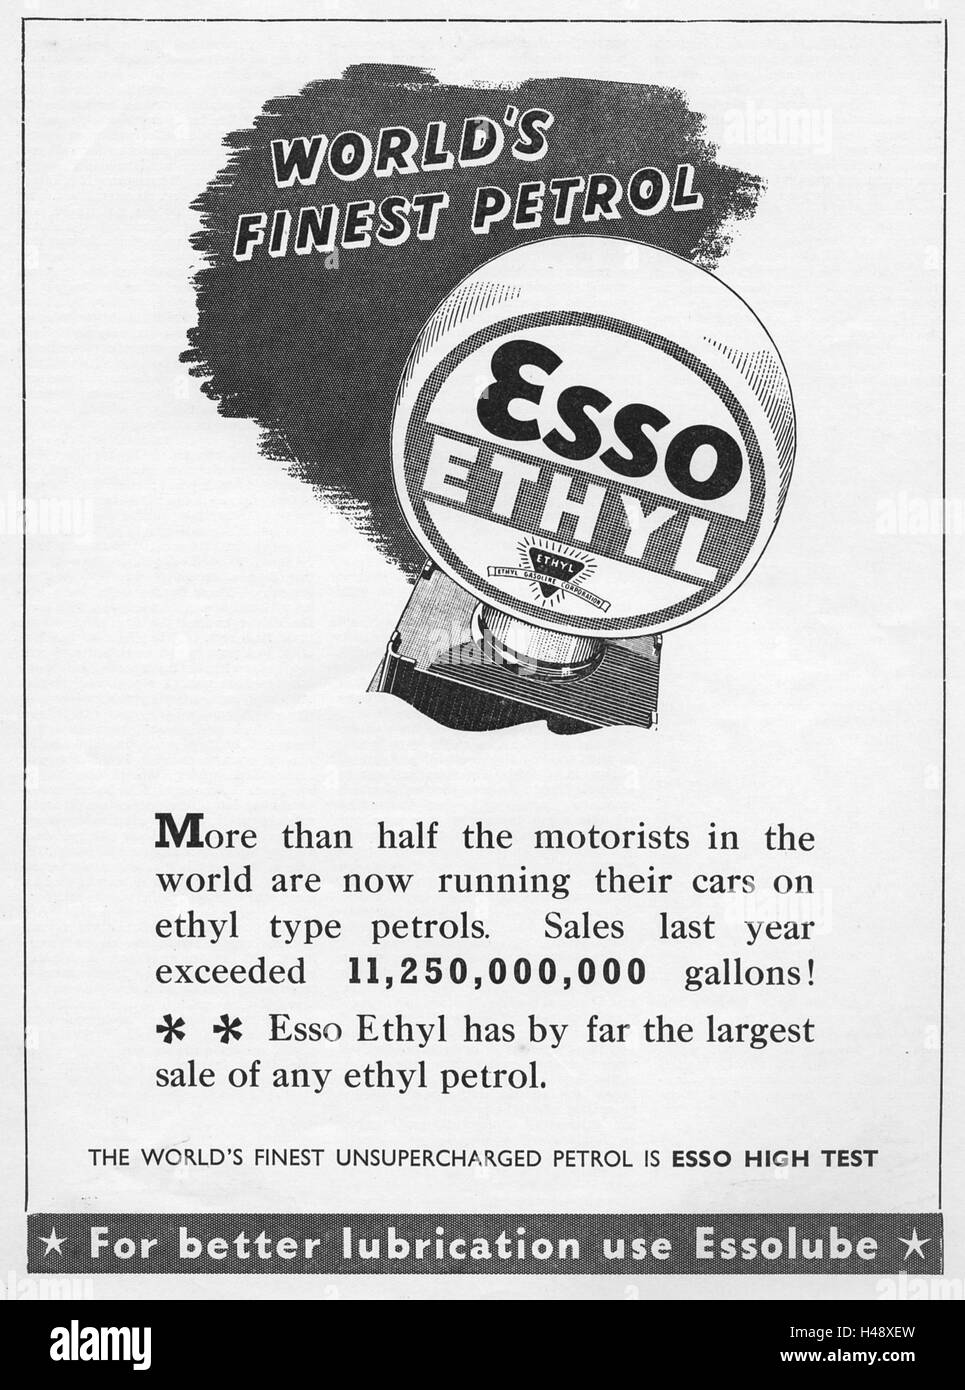 Advert for ESSO Petrol from a Motor Sport magazine in 1937. - Stock Image